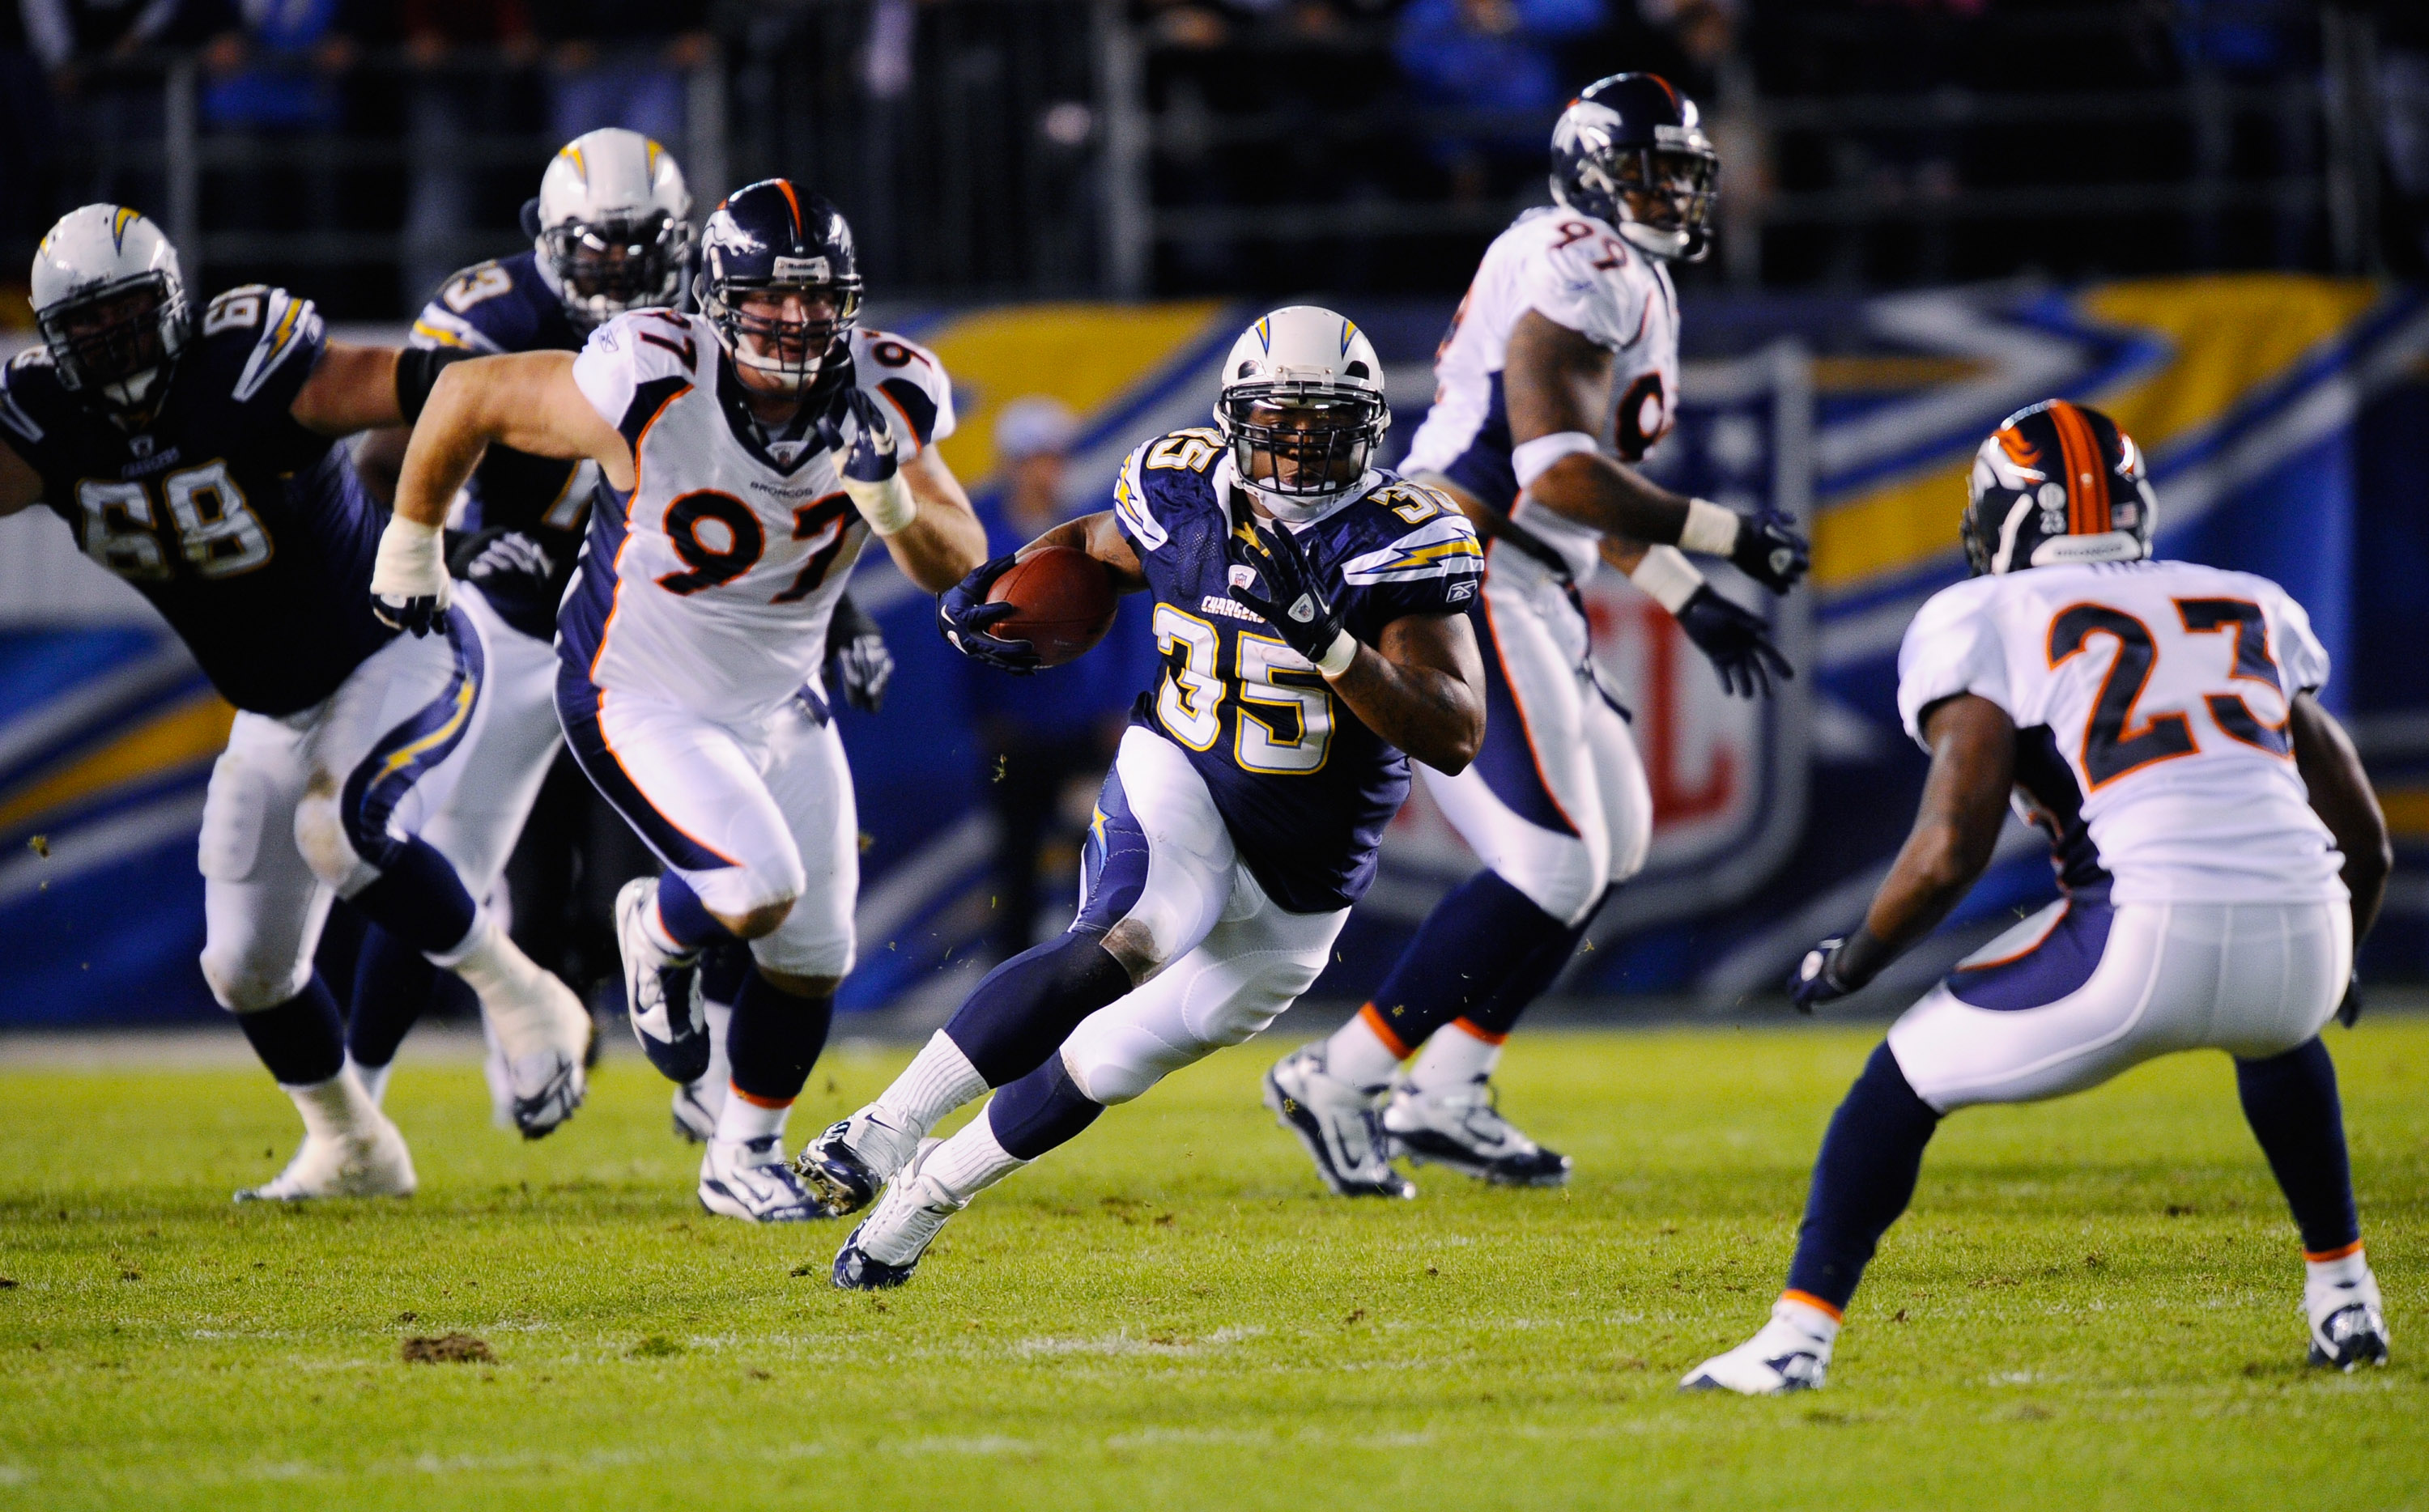 SAN DIEGO - NOVEMBER 22:  Mike Tolbert #35 of the San Diego Chargers in action against Denver Broncos at Qualcomm Stadium on November 22, 2010 in San Diego, California.  (Photo by Kevork Djansezian/Getty Images)